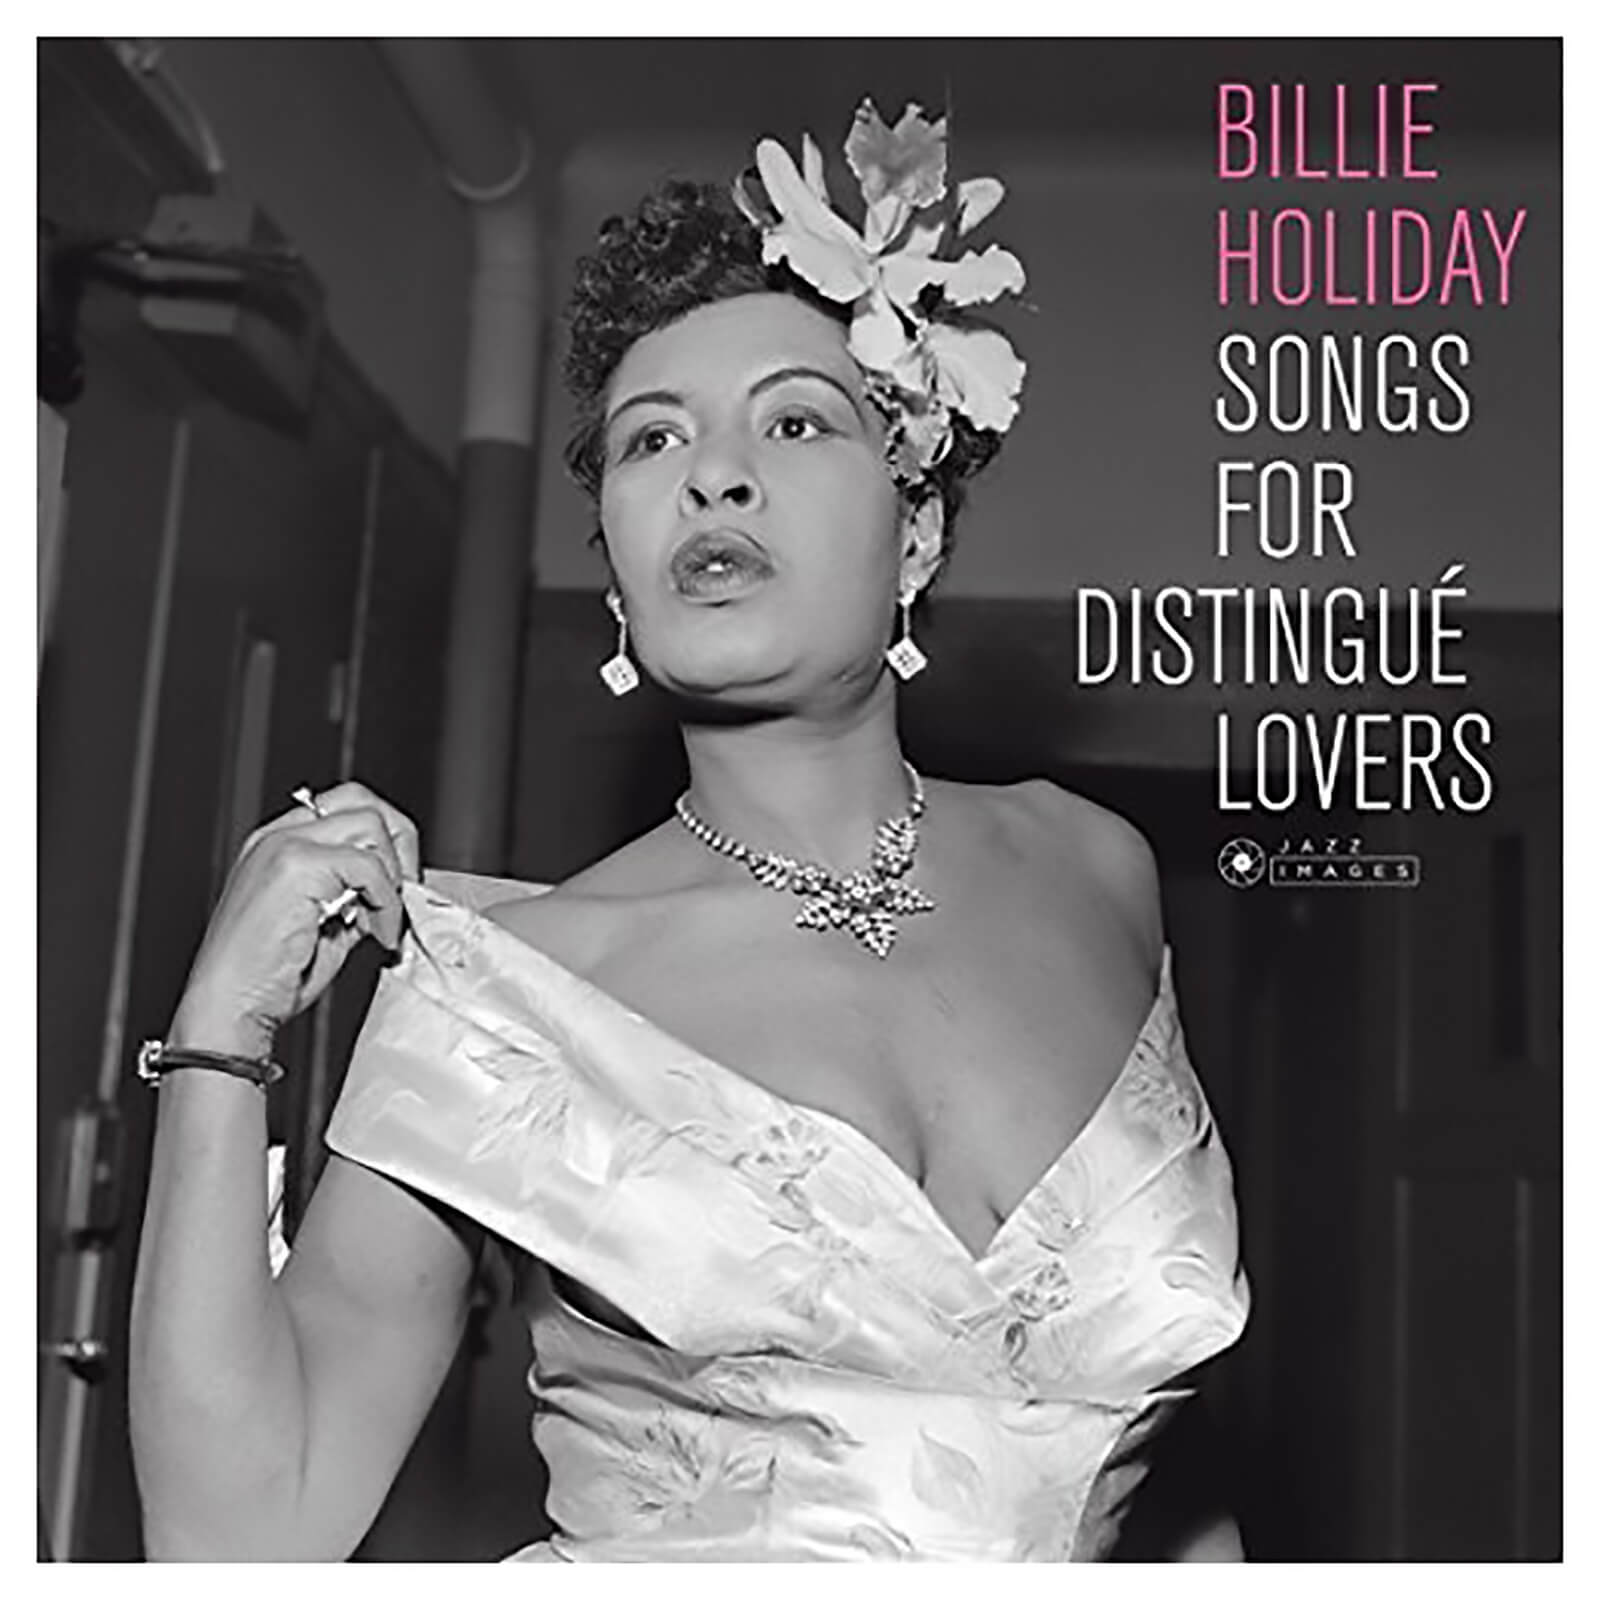 Billie Holiday - Songs For Distingue Lovers (Cover Photo By Jean) - Vinyl